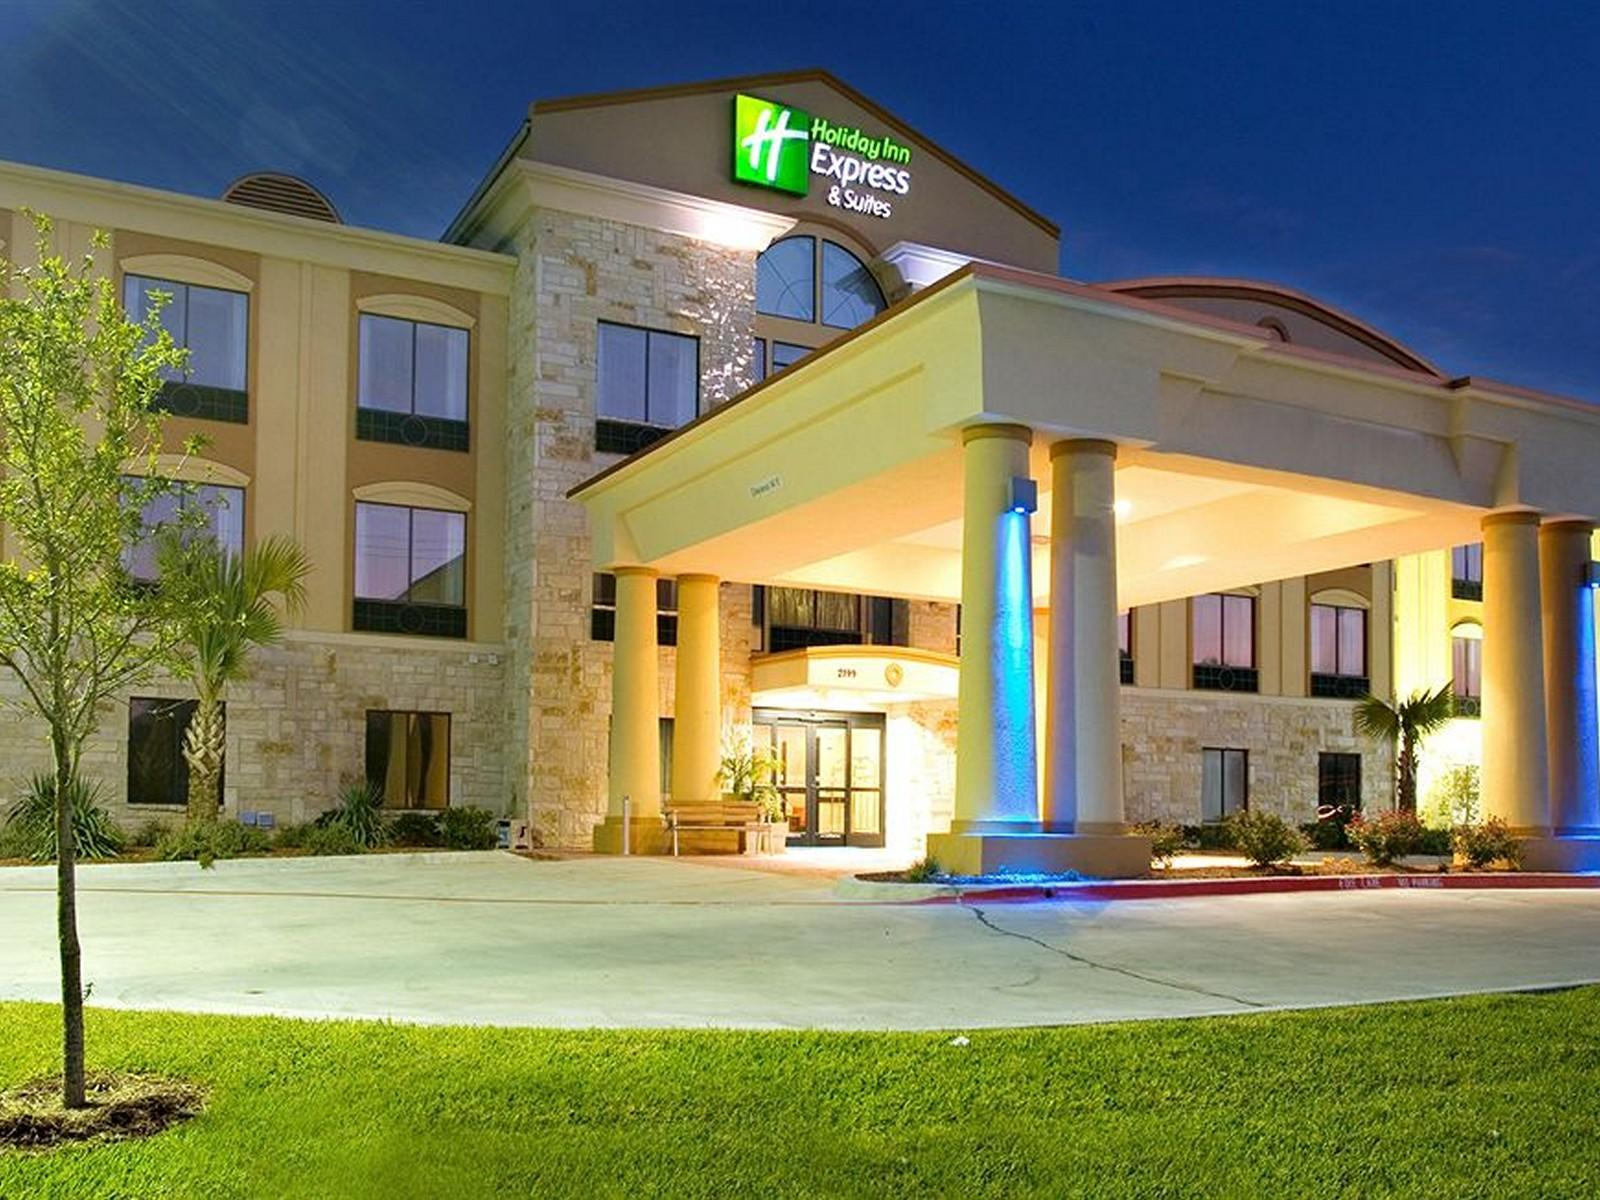 Holiday Inn Express And Suites Beeville